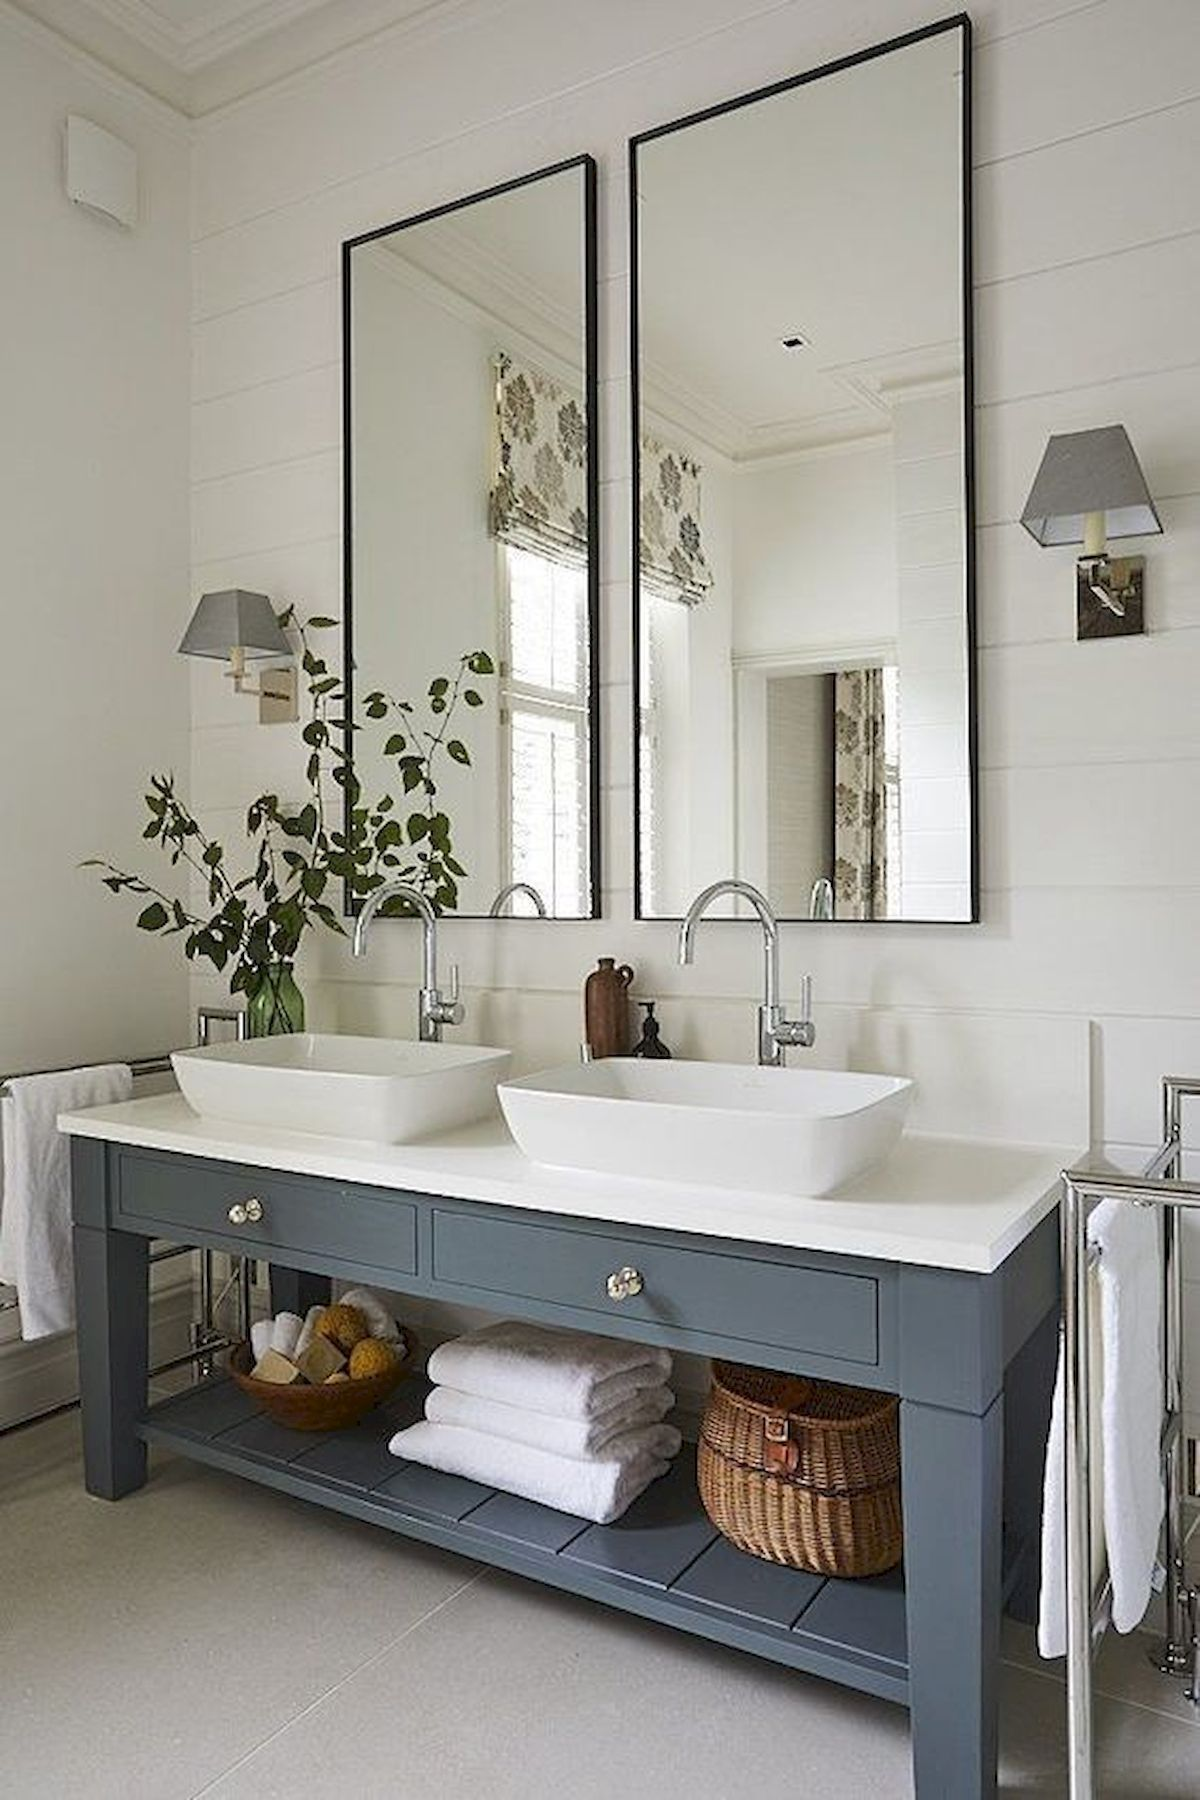 90 Great Bathroom Mirror Ideas Modern Farmhouse Bathroom Bathroom Interior Bathroom Interior Design